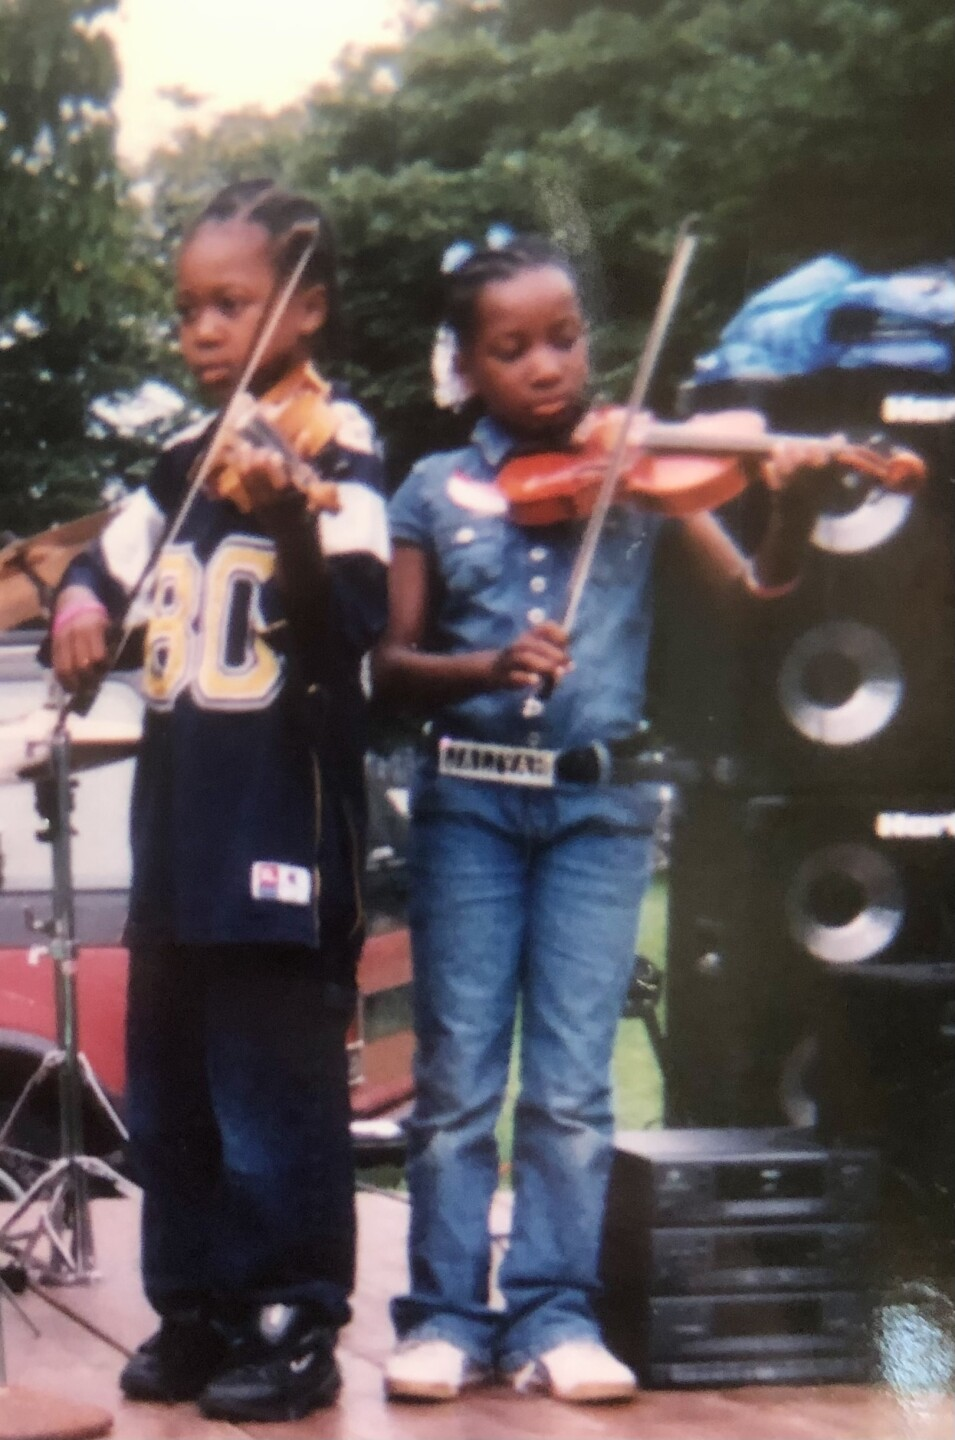 Johnny and Jaliyah Linton both picked up their violins for the first time at 5 years old